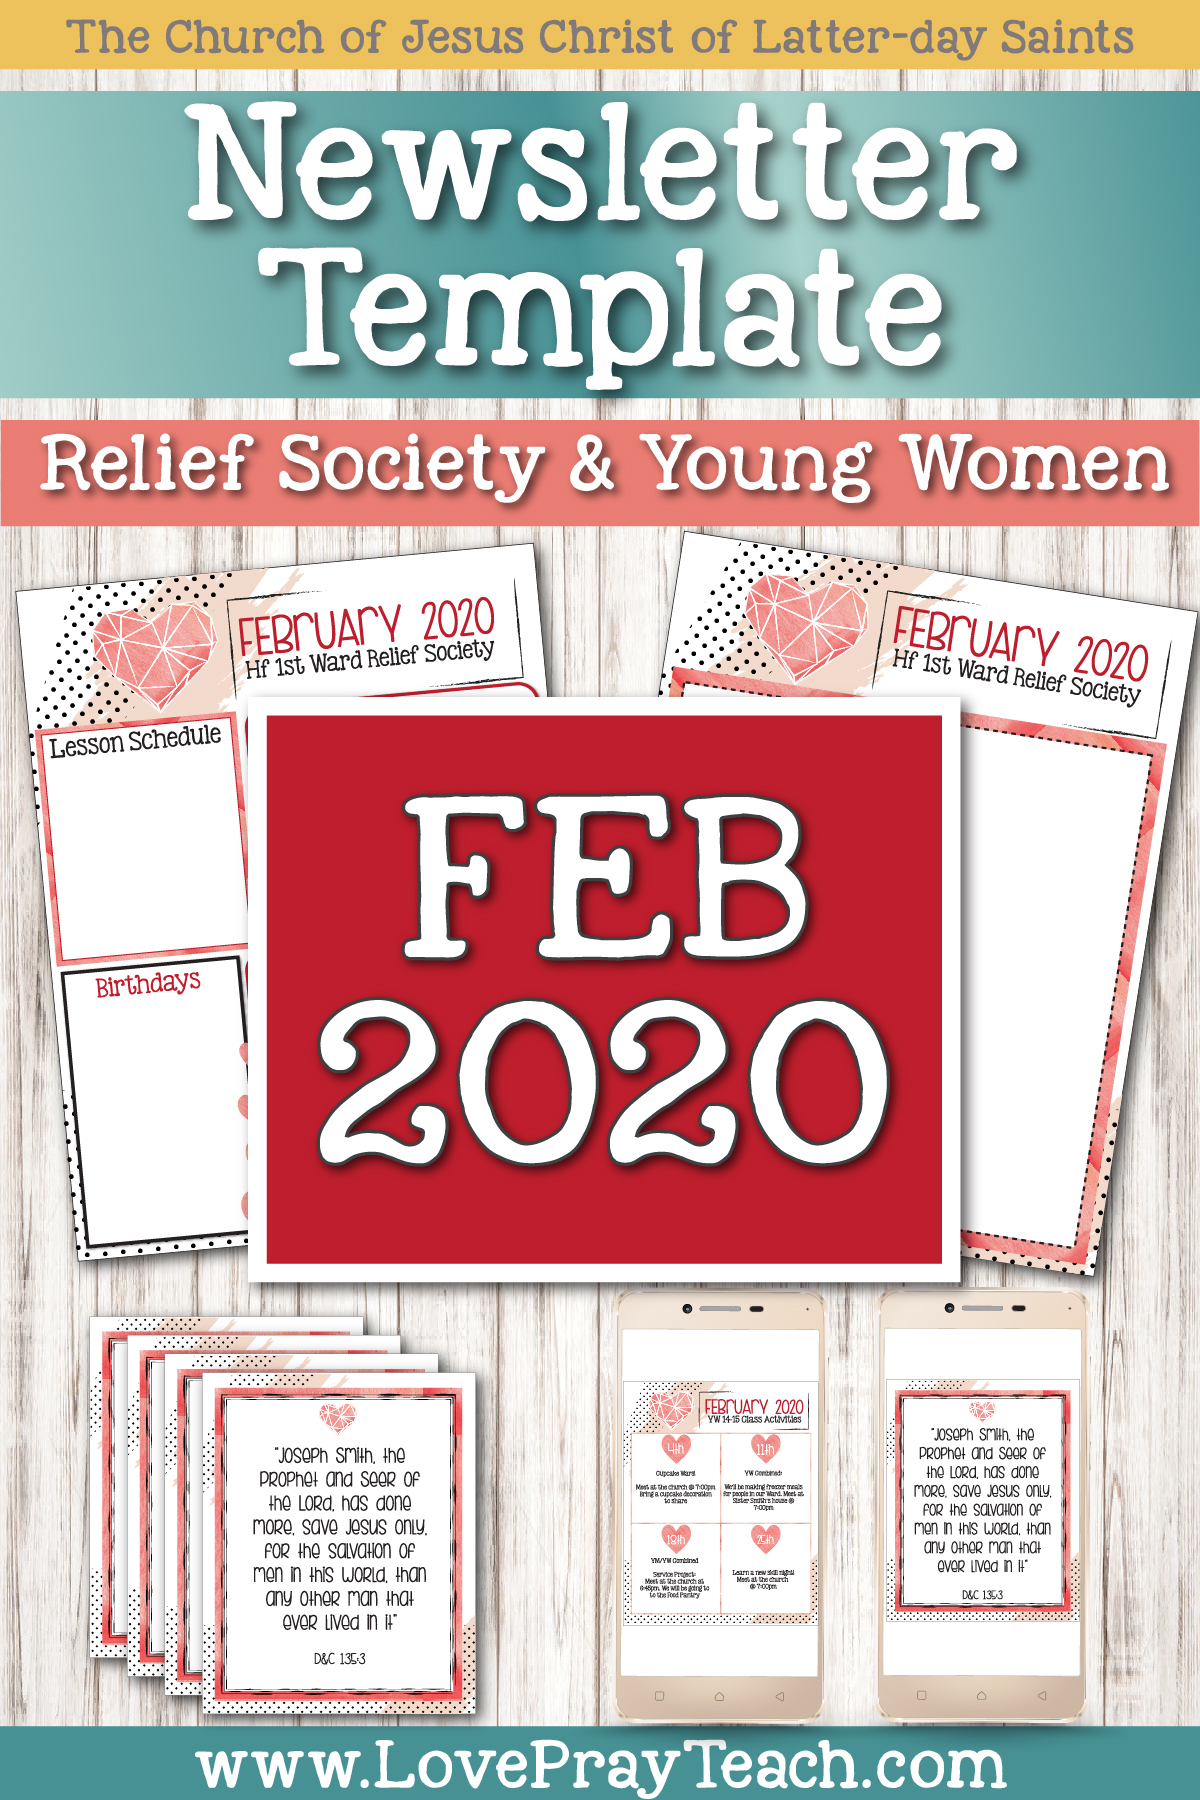 relief-society-newsletters